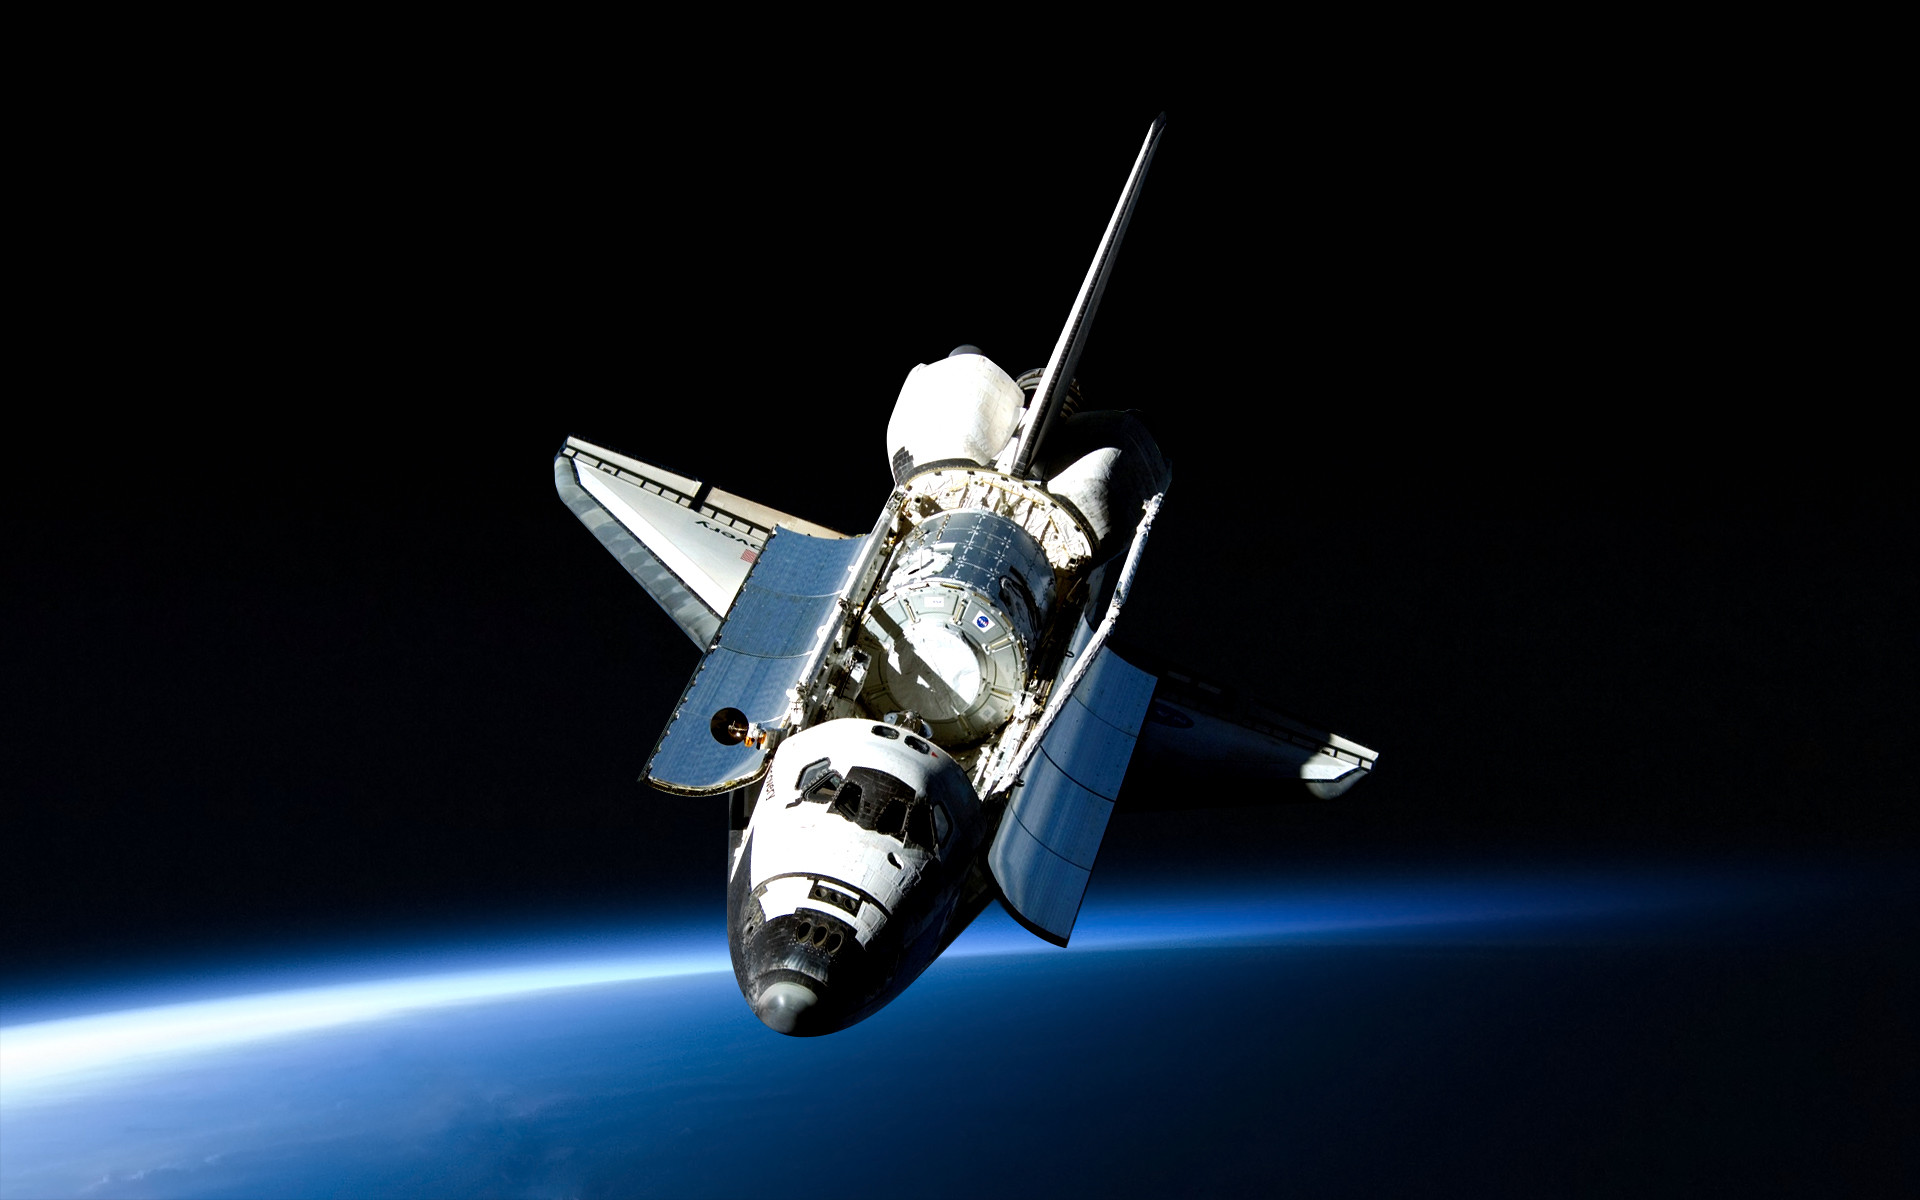 1920x1200 /r/allSpace Shuttle Discovery posing for a great wallpaper.